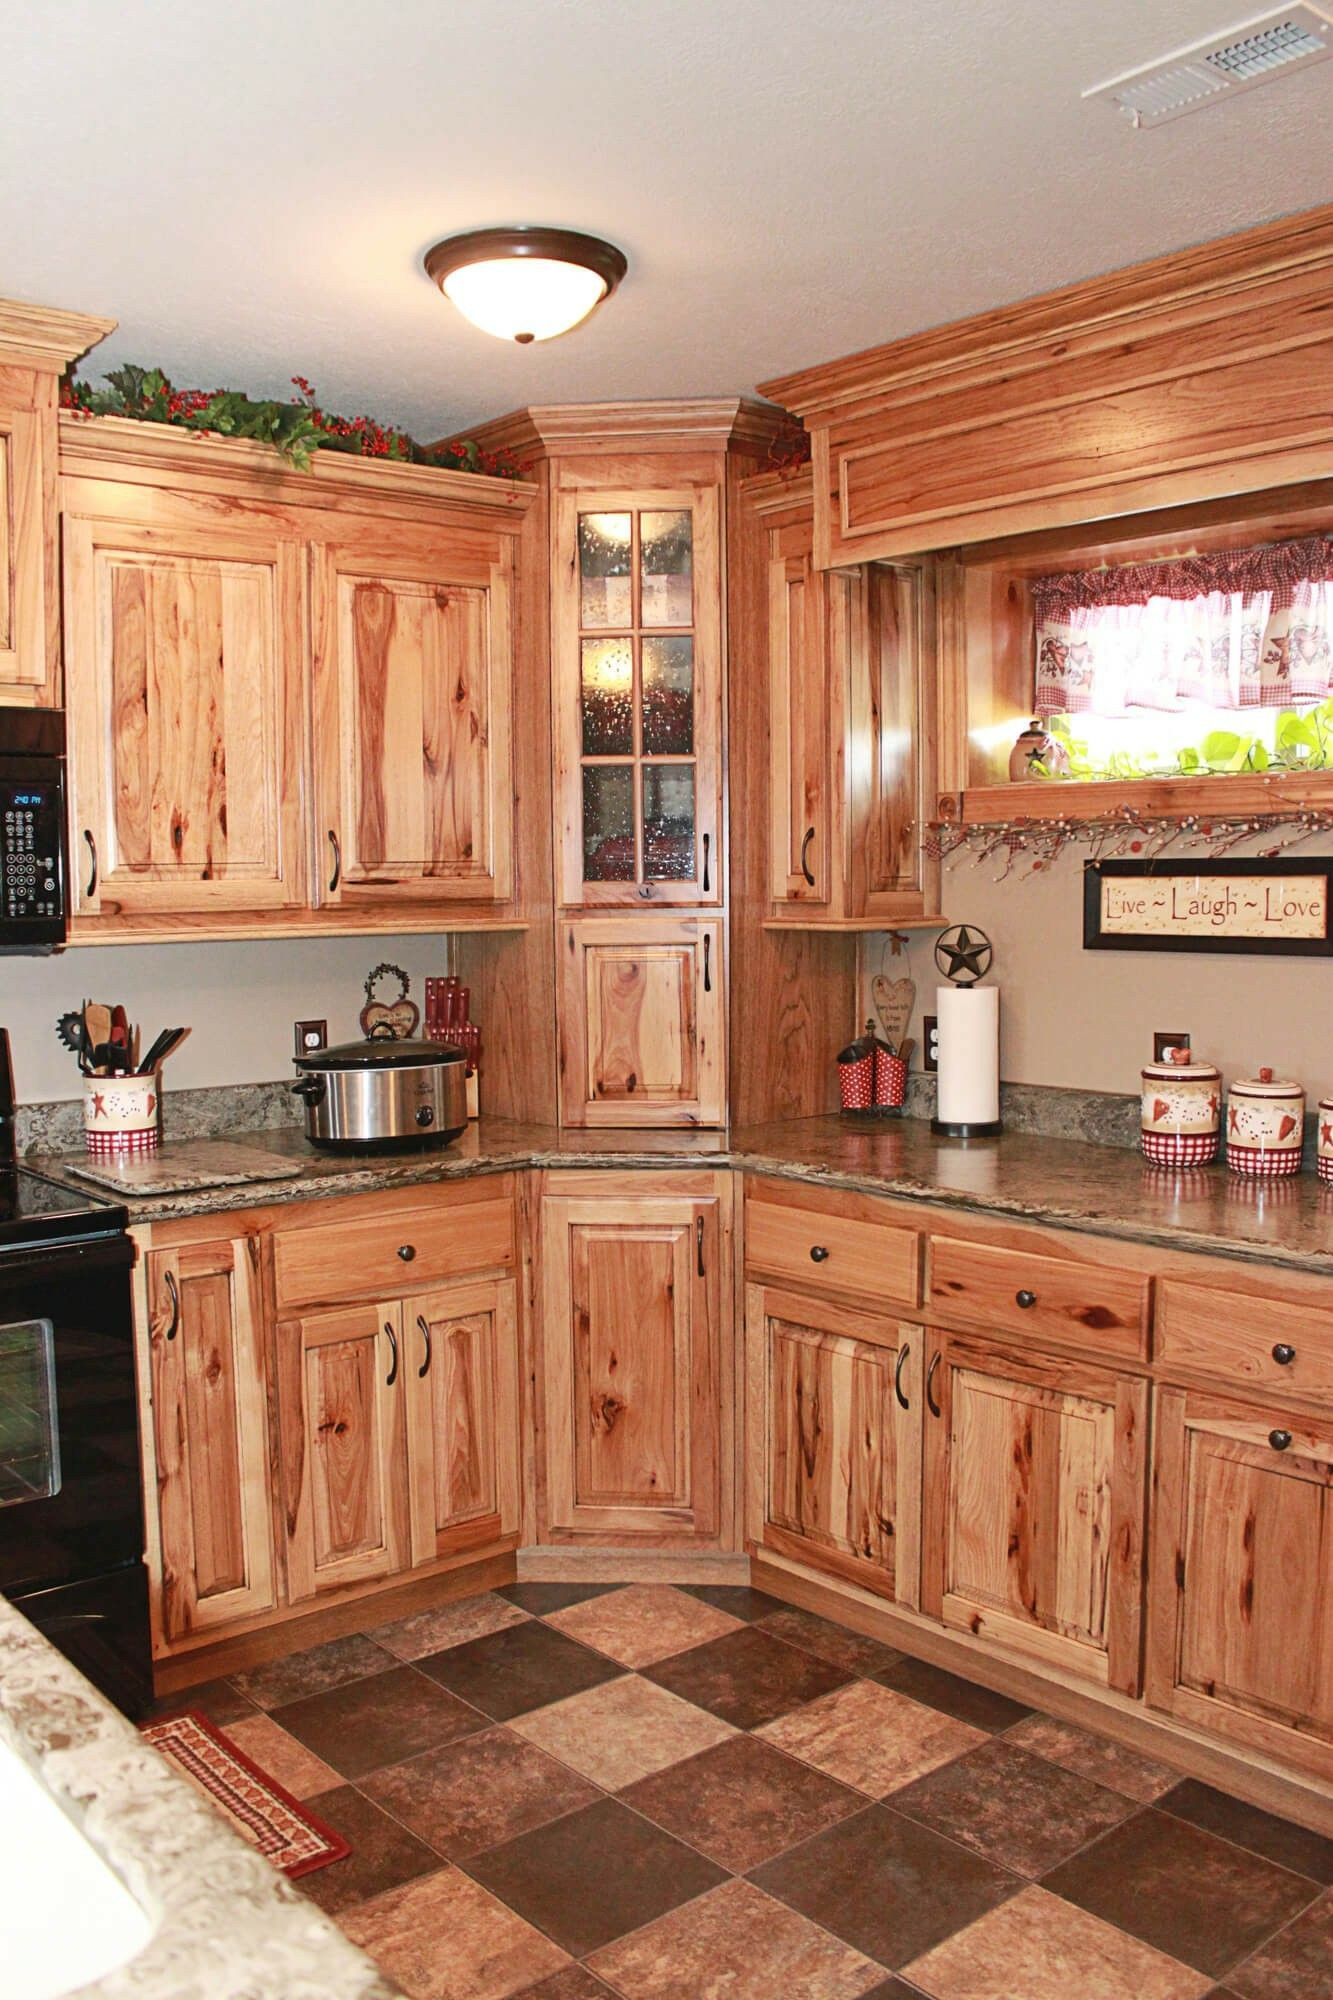 Kitchens Ideas Pictures 15 Best Rustic Kitchen Cabinet Ideas And Design Gallery